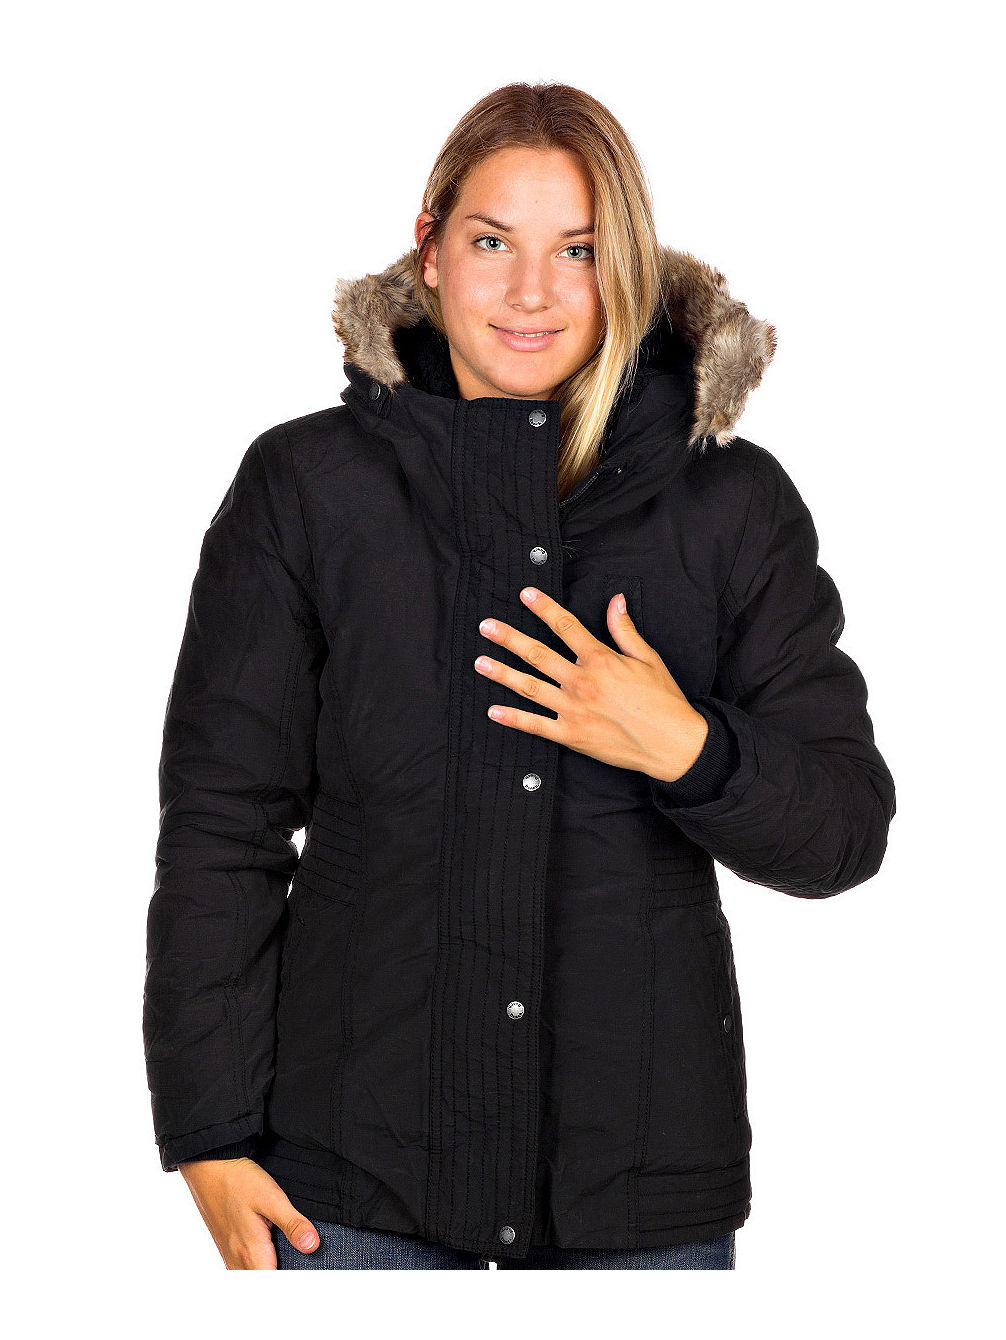 Raslo Jacket Women